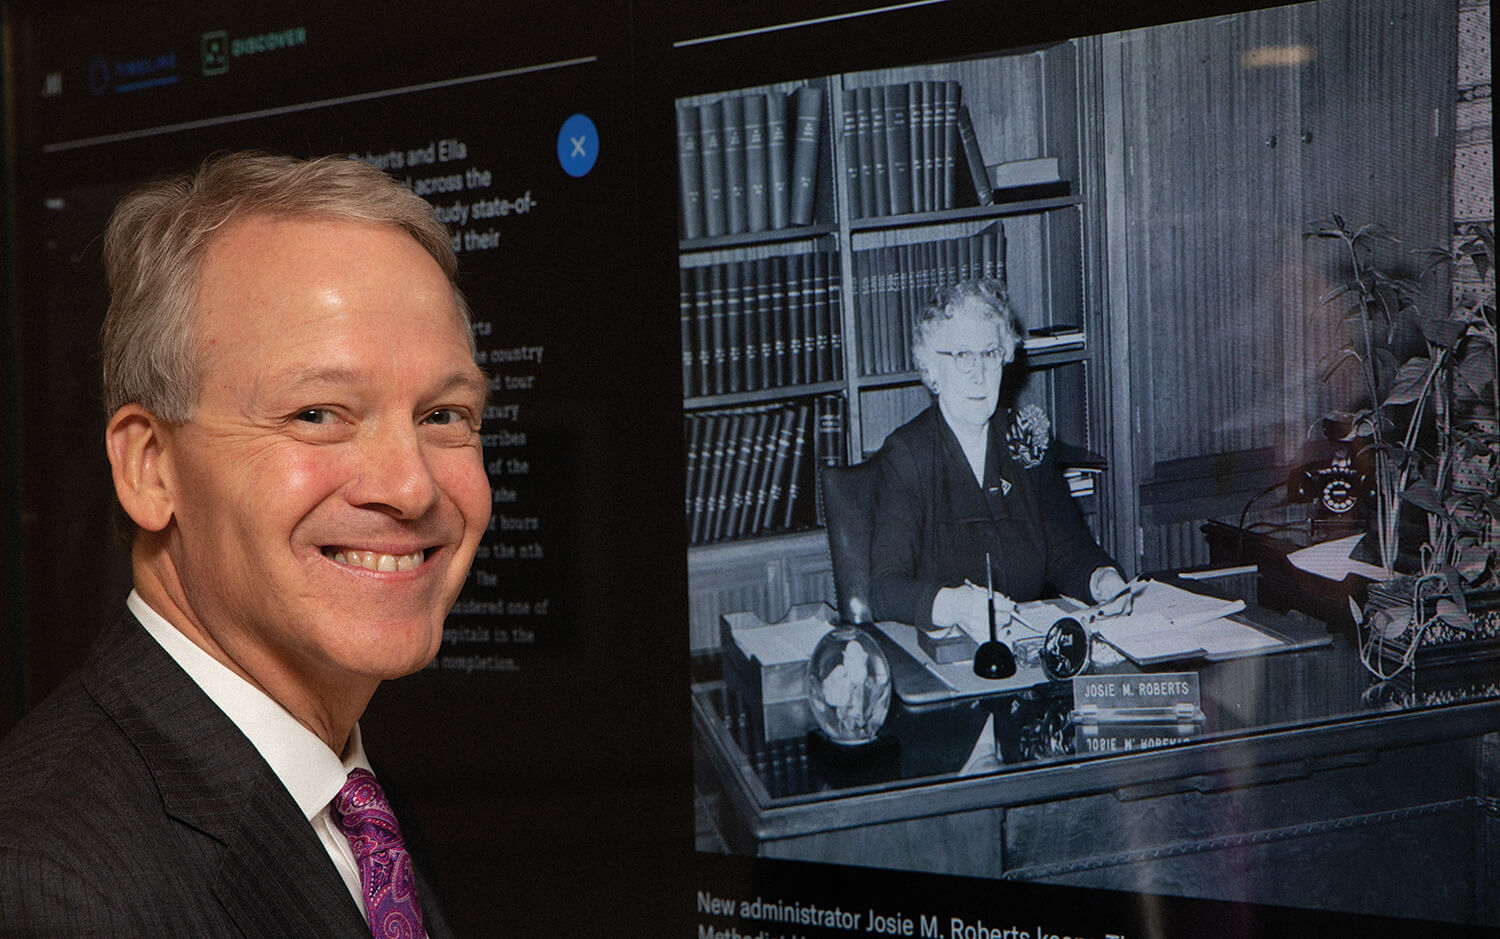 Marc Boom, M.D., current president and CEO of Houston Methodist Hospital, stands next to a photo of his predecessor, Josie Roberts.